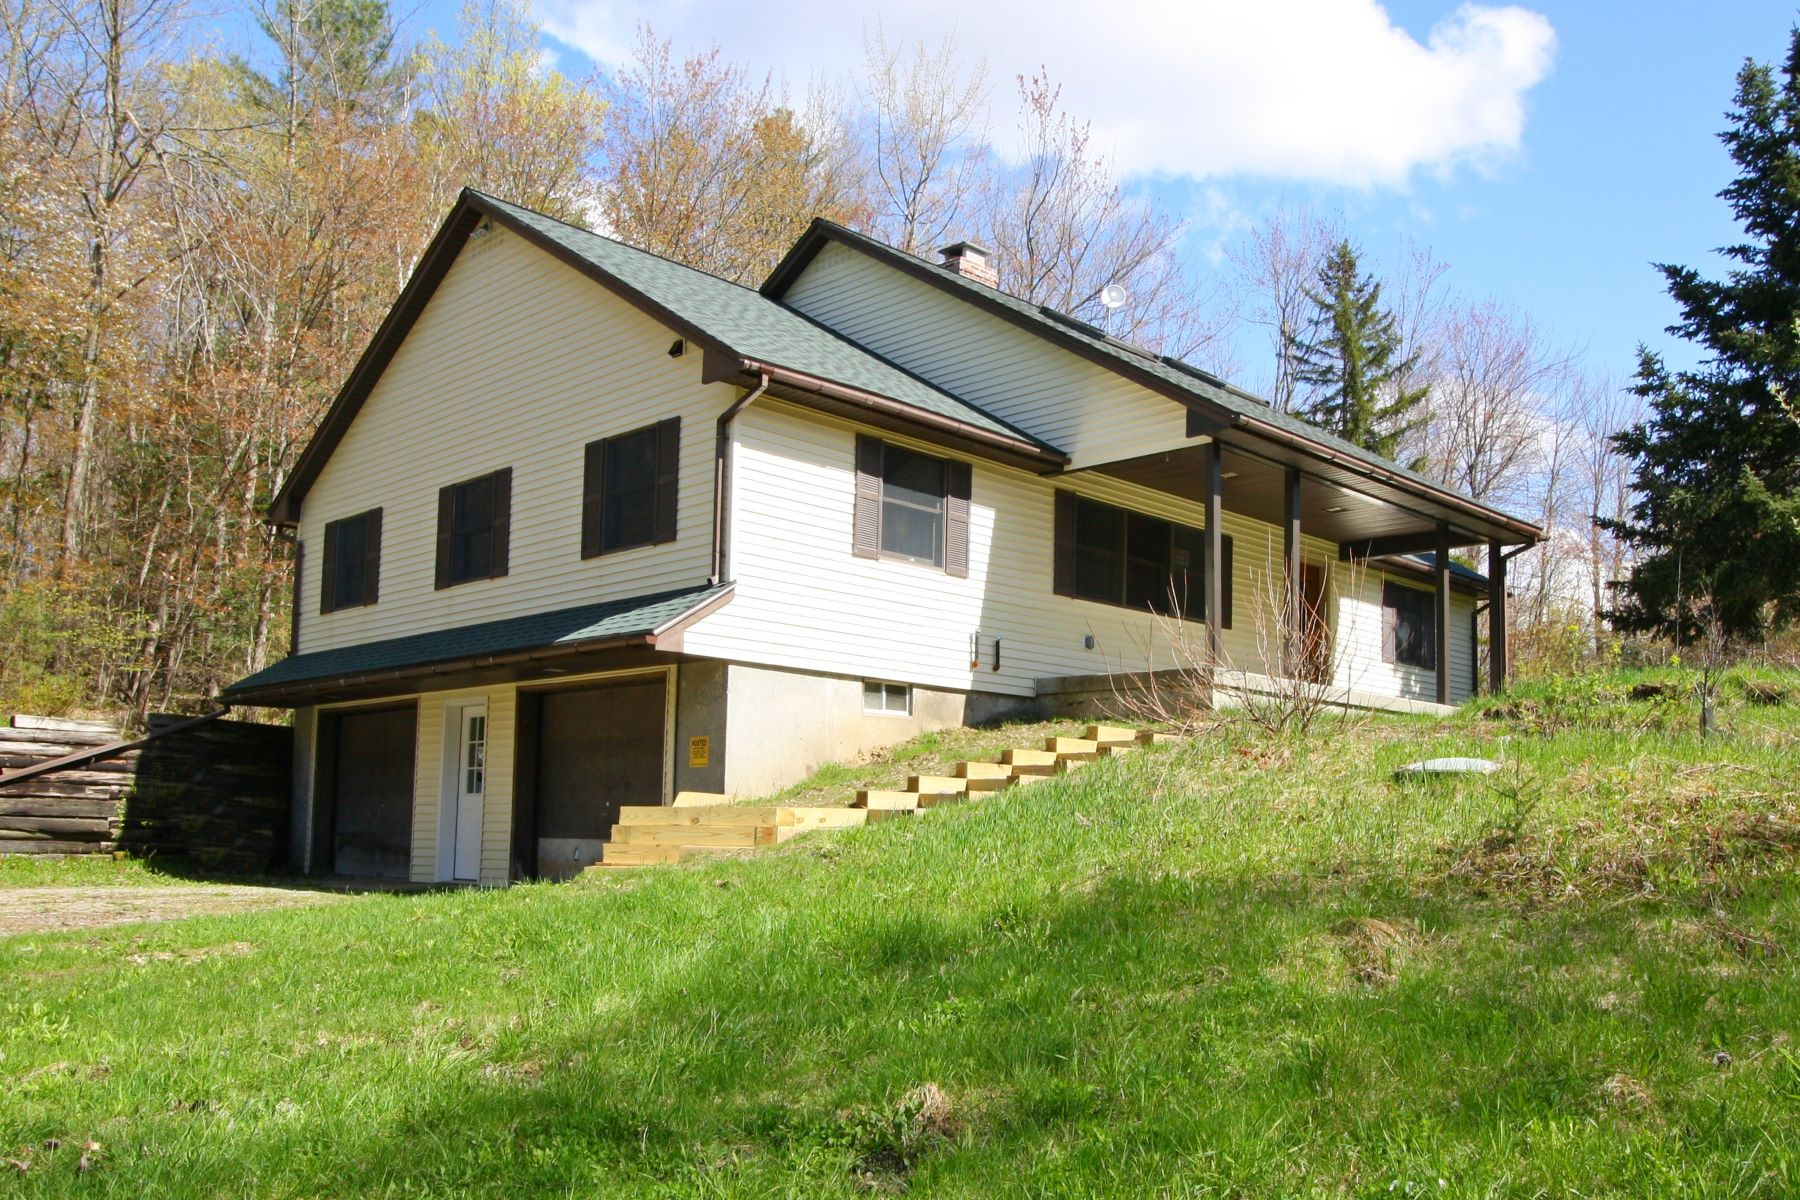 single family homes for Sale at 354 Billings Farm Road, Ripton 354 Billings Farm Rd Ripton, Vermont 05766 United States